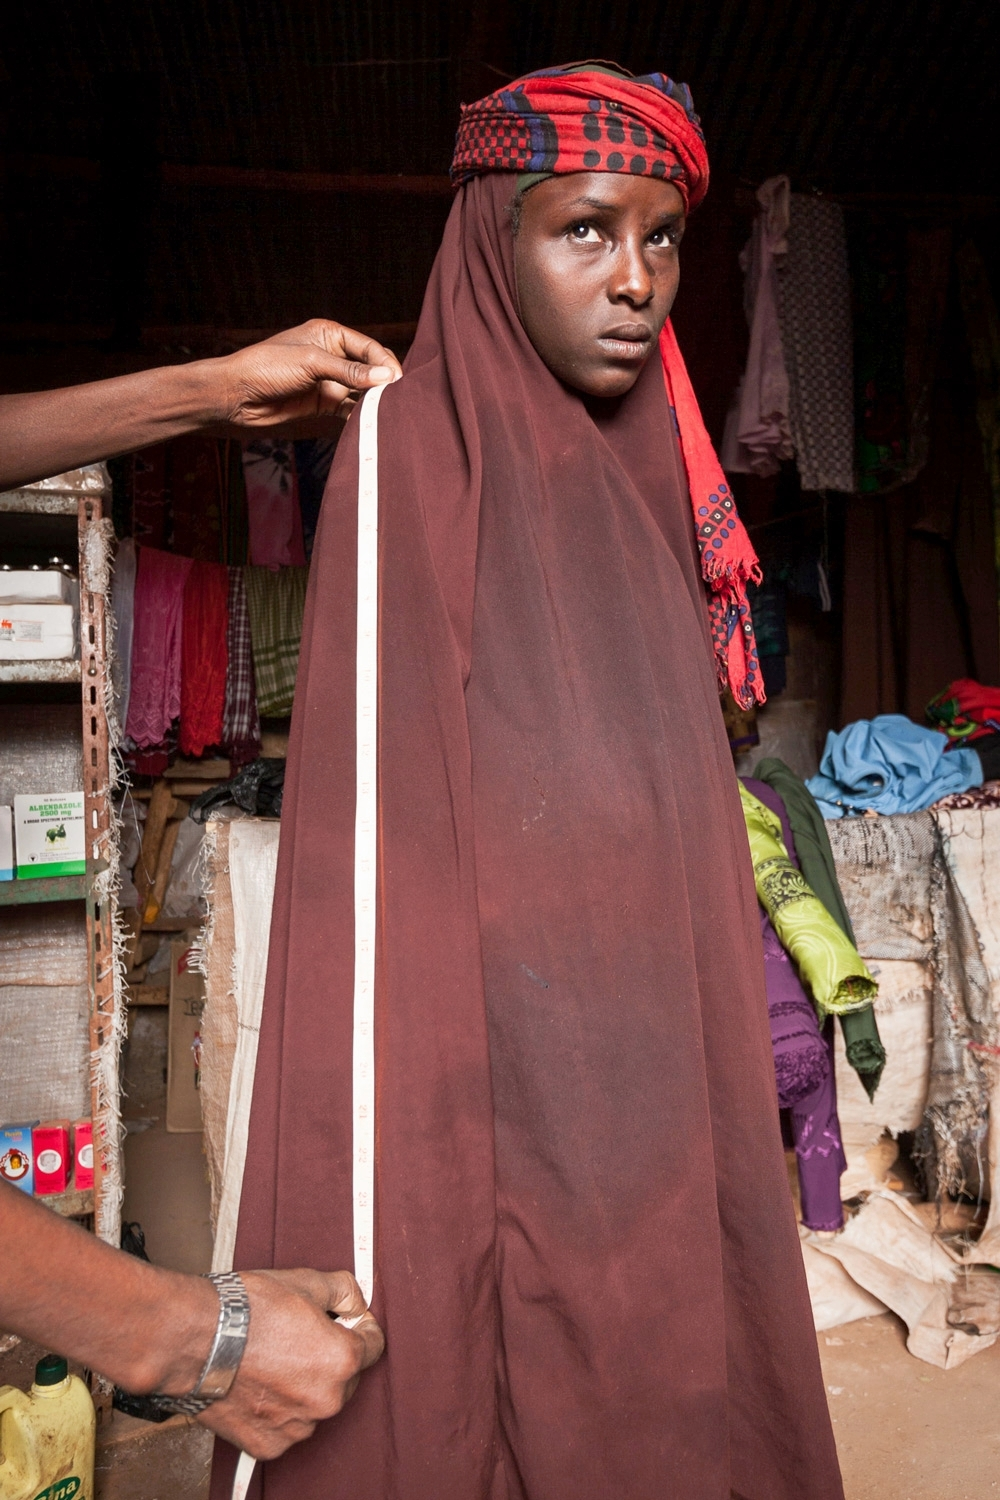 A tailor measures Habiba for new clothes in advance of her wedding; Ethiopia